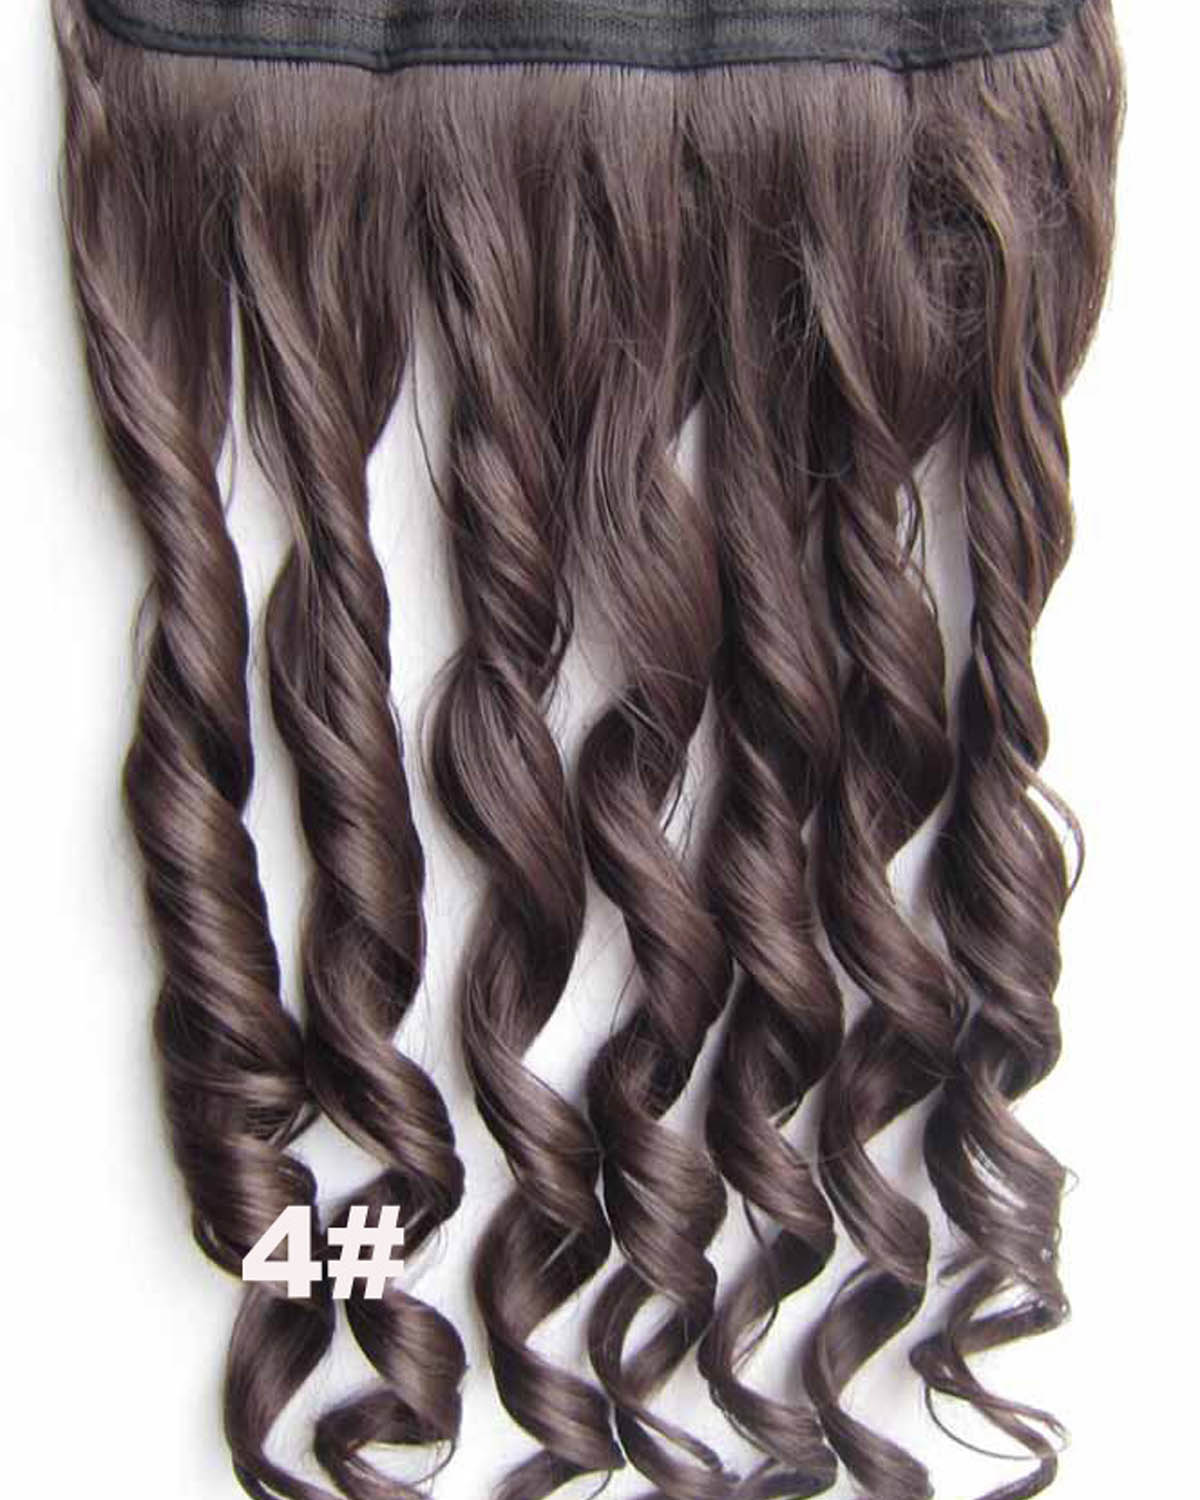 24 Inch Women in Style  Body Wave Curly Long One Piece 5 Clips Clip in Synthetic Hair Extension  4#